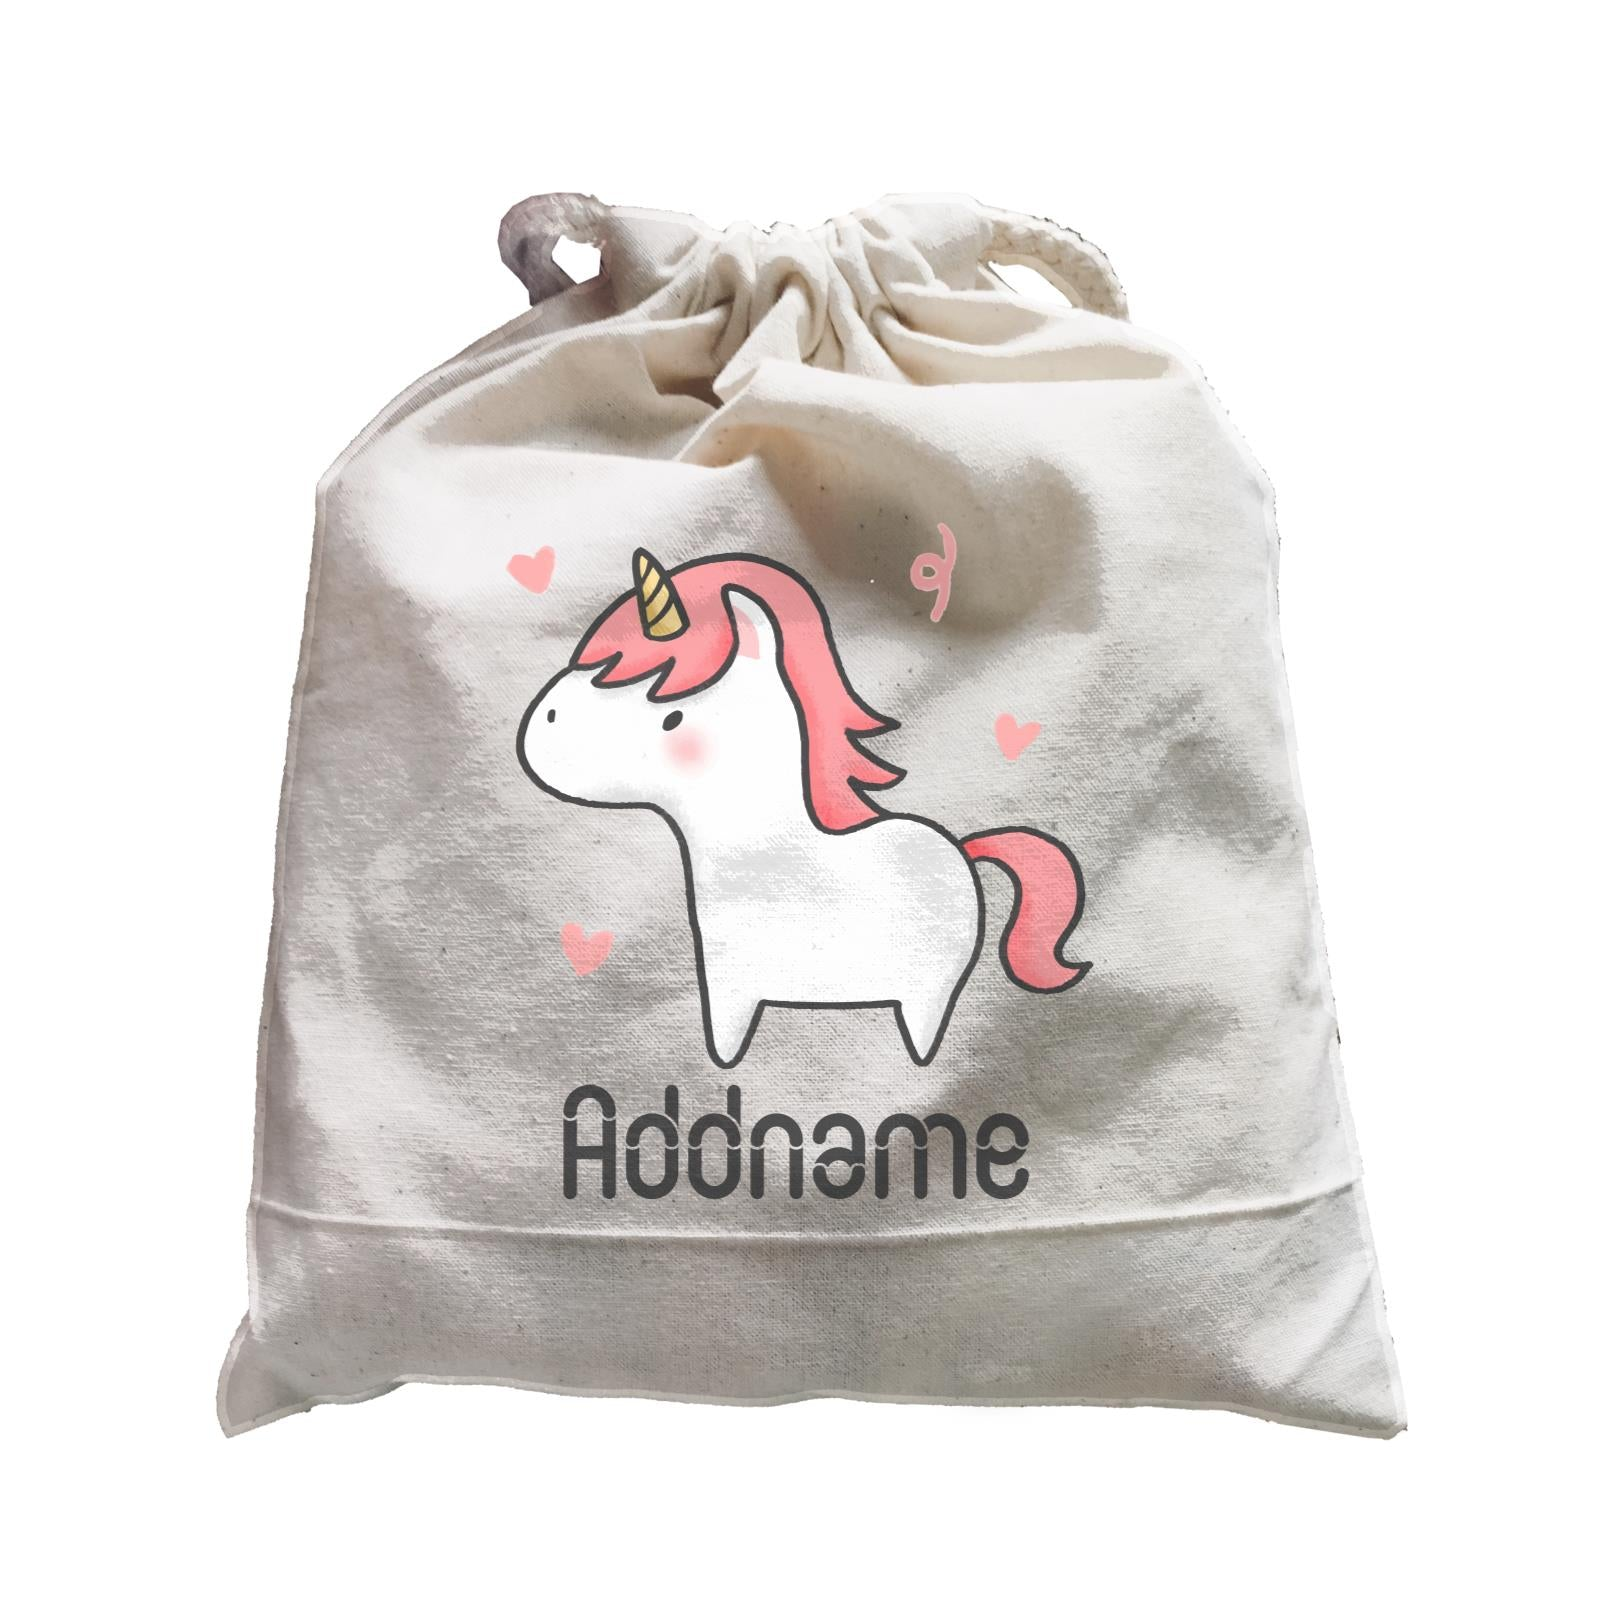 Cute Hand Drawn Style Unicorn Addname Satchel